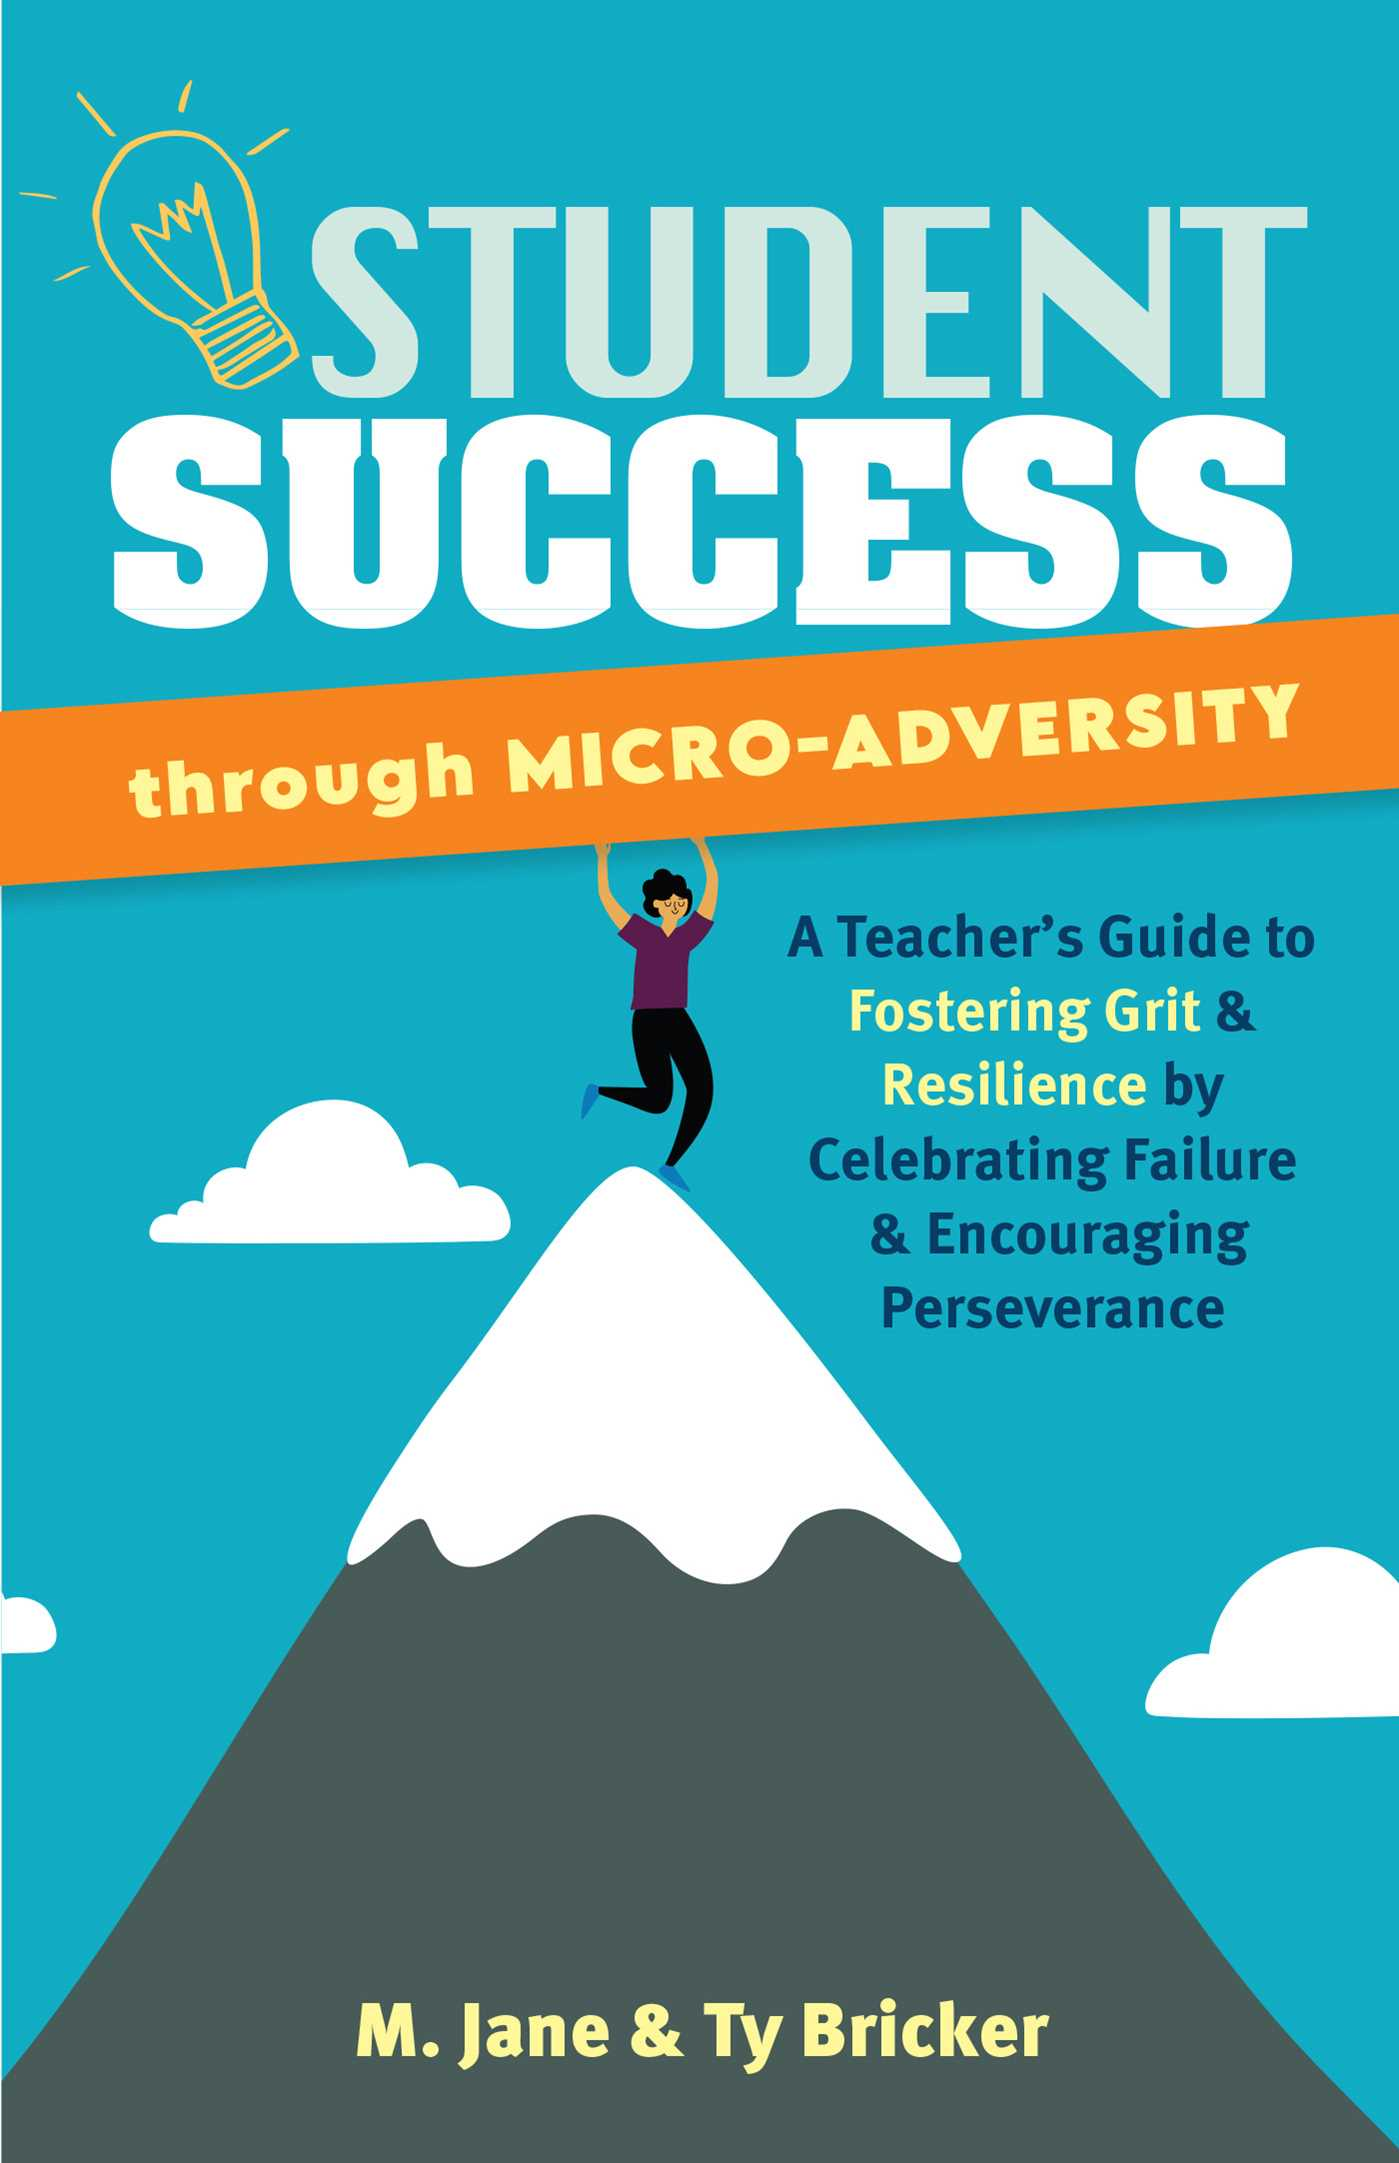 Student Success through Micro-Adversity: A Teacher's Guide to Fostering Grit and Resilience by Celebrating Failure and Encouraging Perseverance